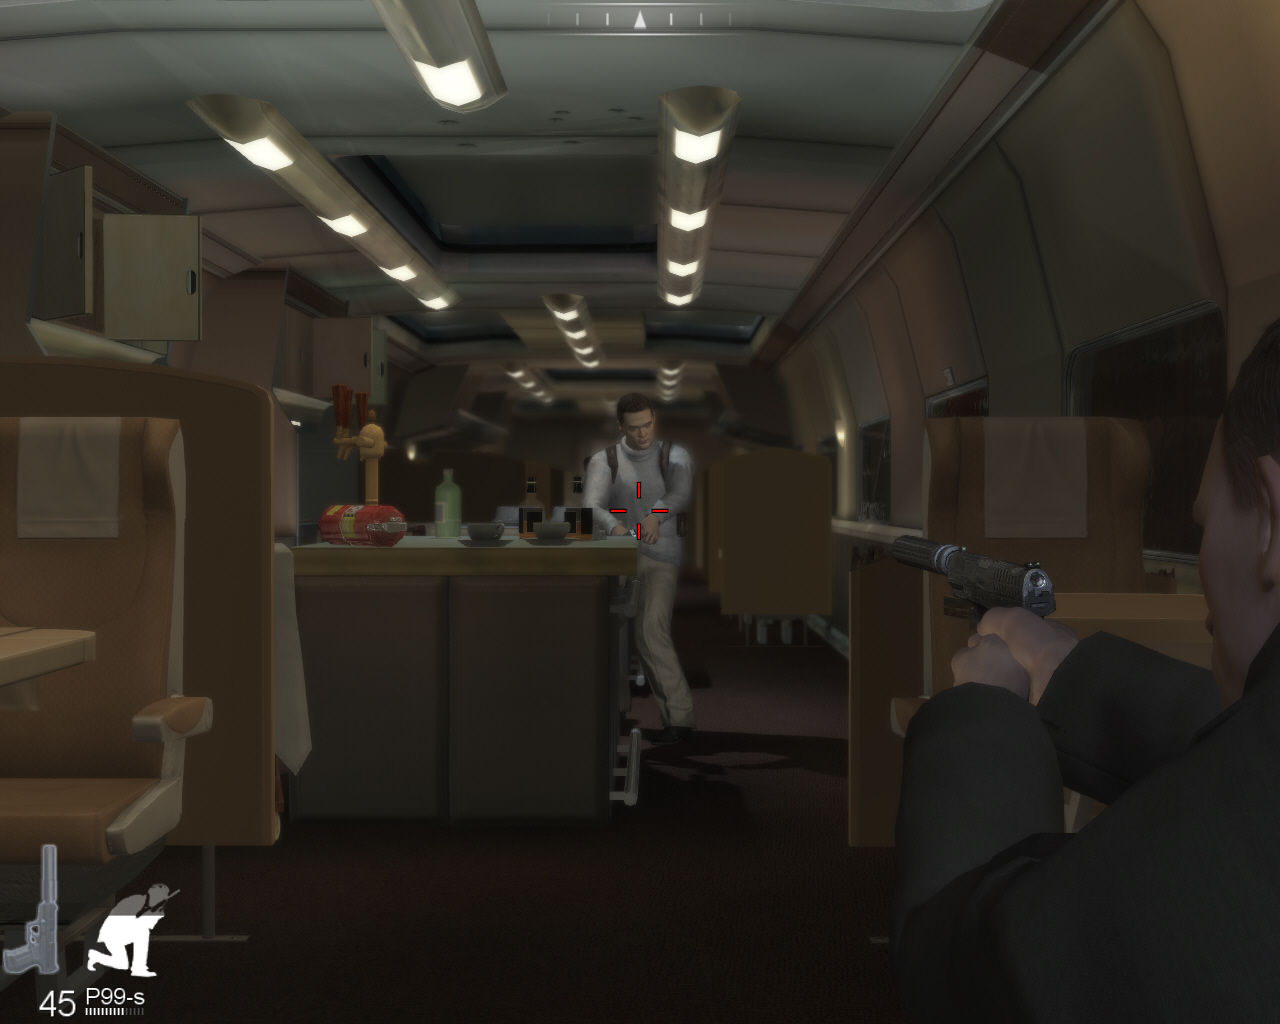 007: Quantum of Solace Windows Shooting inside train.